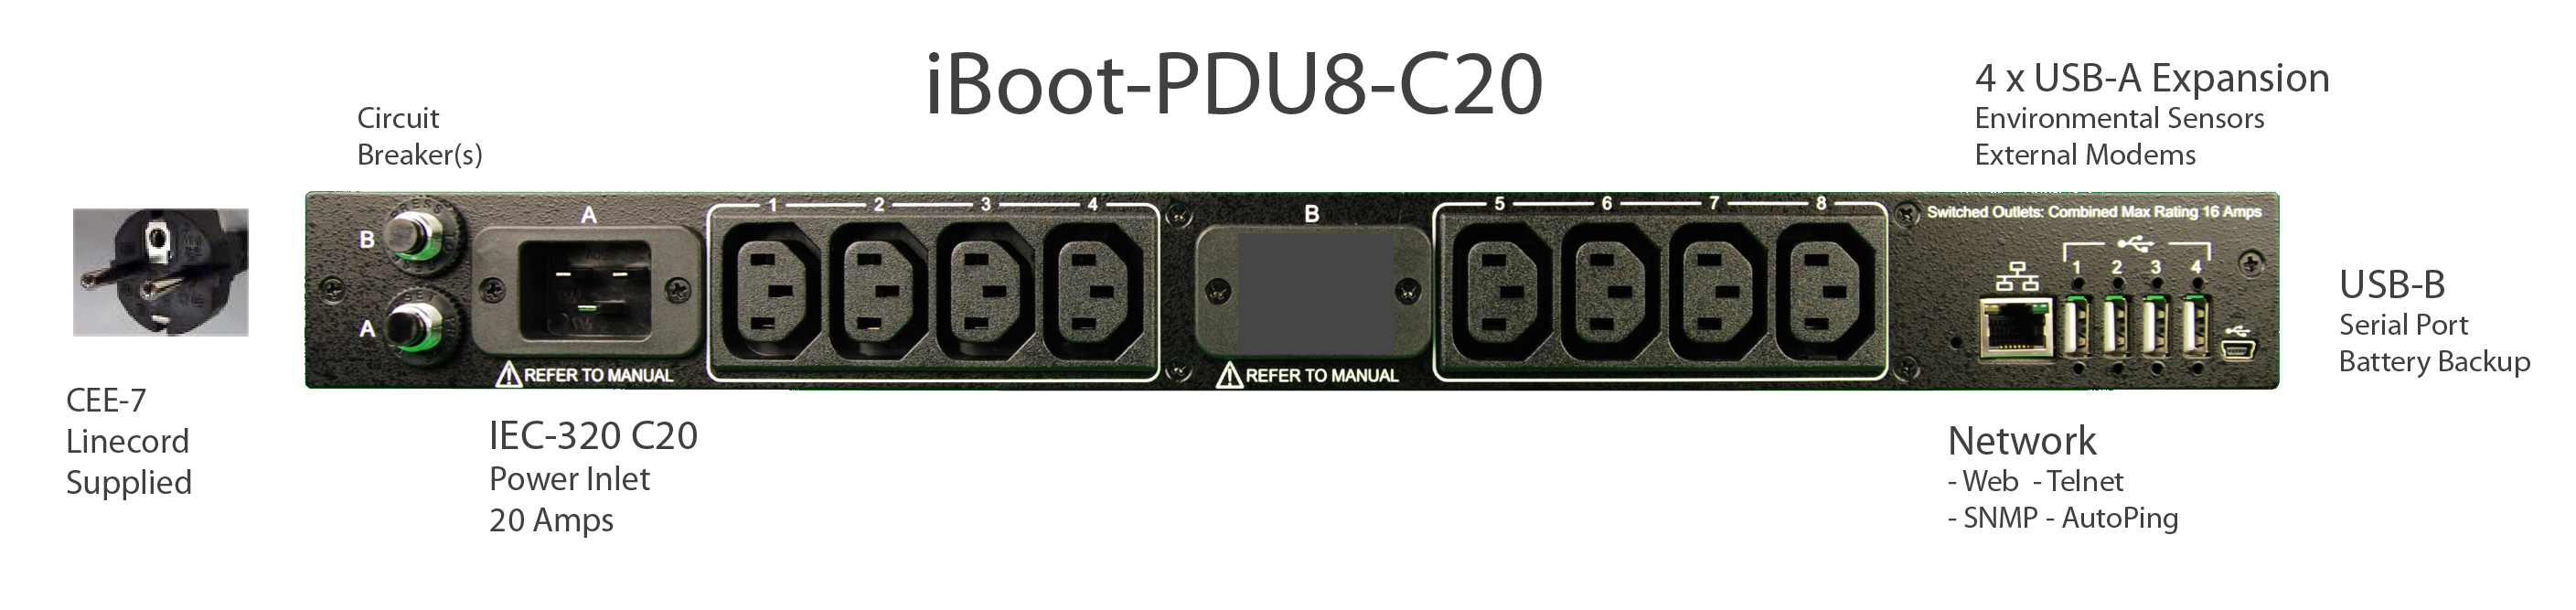 iBoot-PDU8-C20 for Remote Reboot, 1 x IEC C20 .